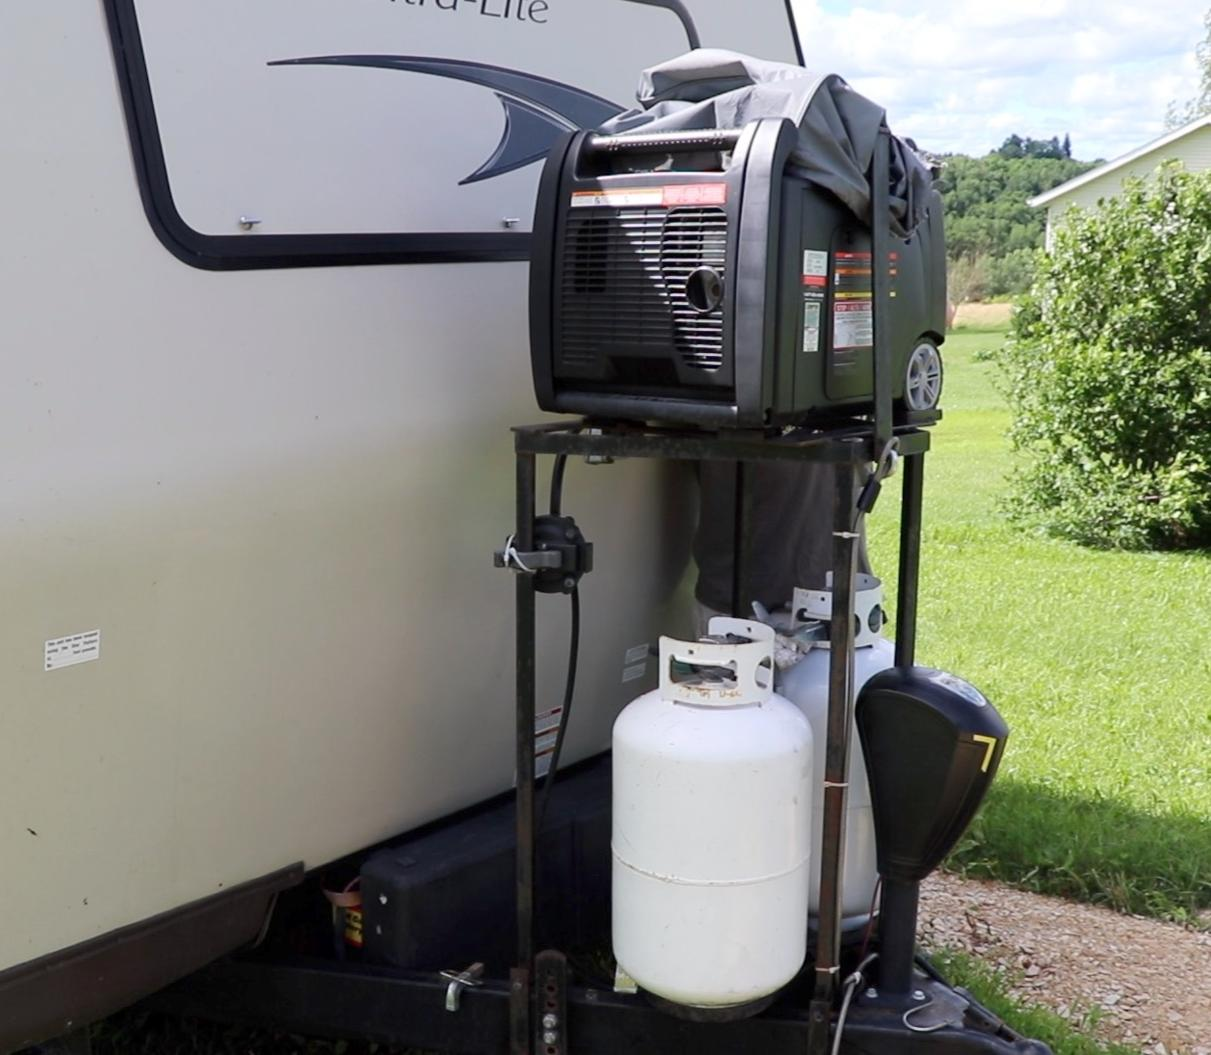 Rv Solar Generator Get The Best Rig For Boondocking How We Wiring Power Adapter 30 Amp Female 15 Male Arcon This Was A Great Purchase And Perfect Life Imho It Has Plenty Of Is Ready Propane Right From Factory